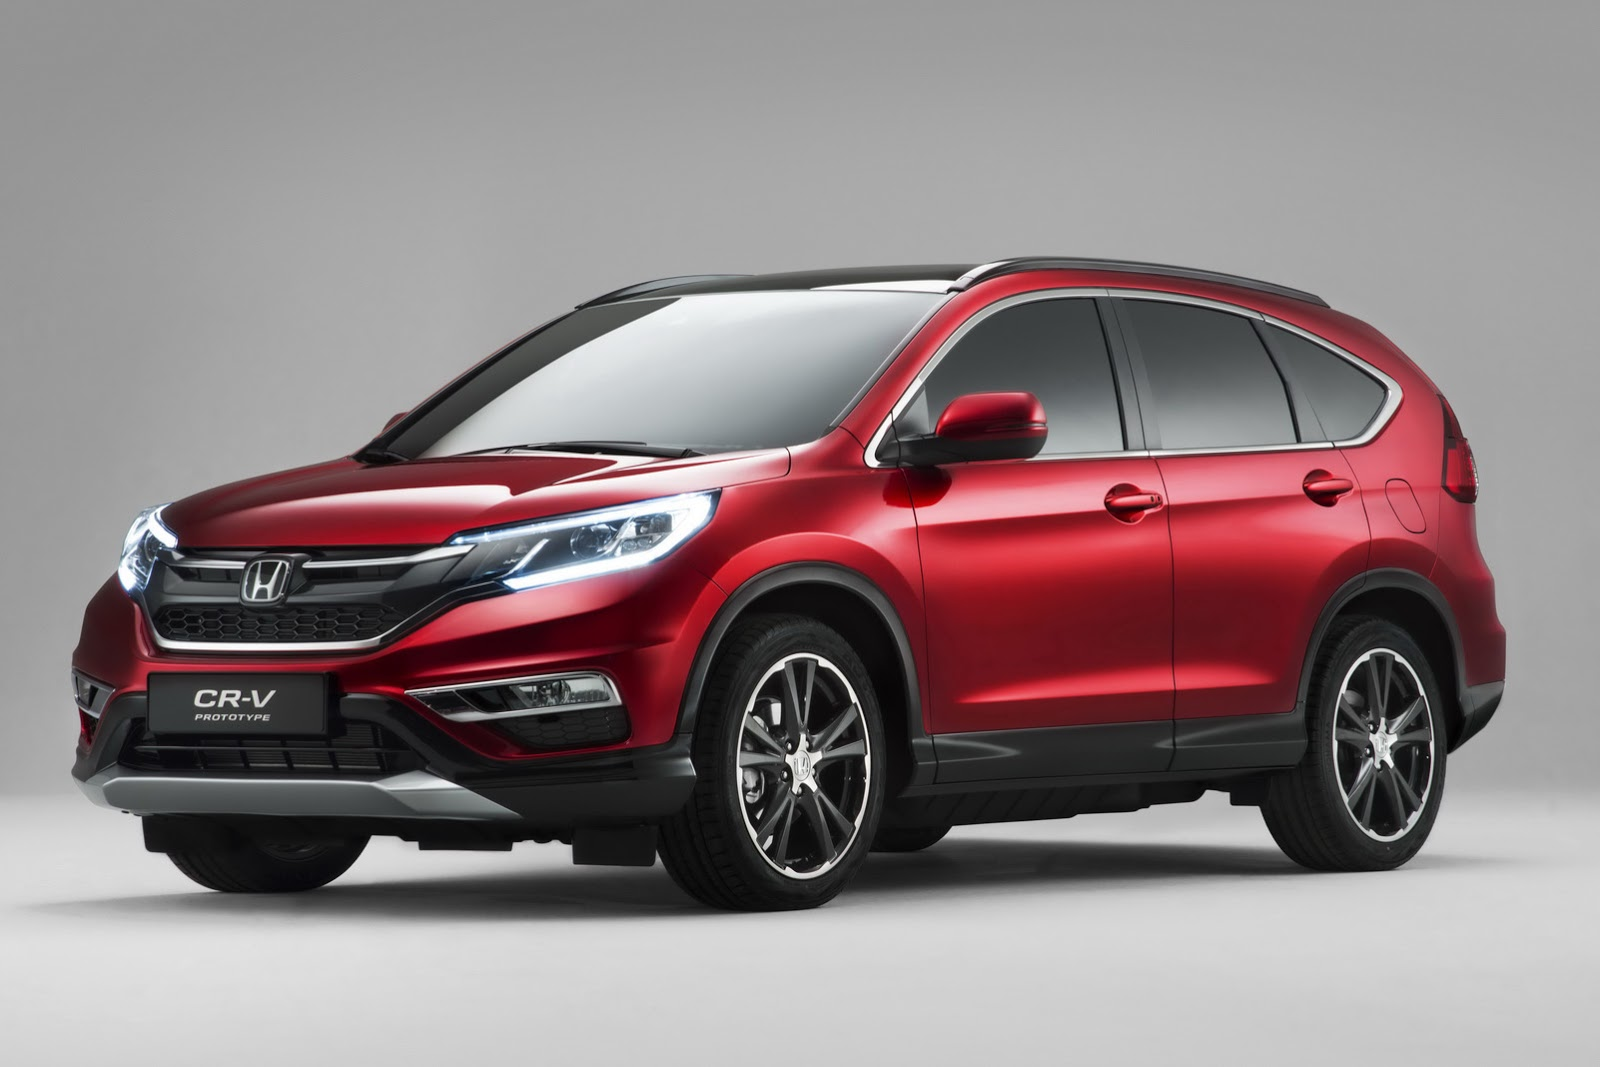 Facelifted 2015 cr v page 2 civinfo for Truecar com honda crv